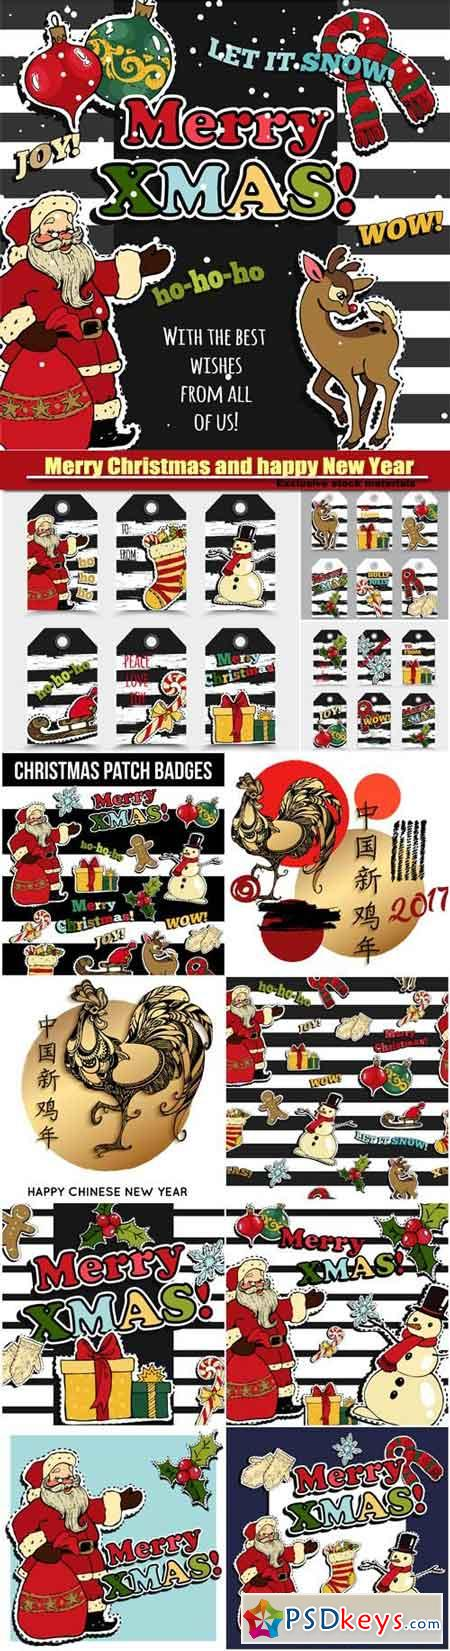 Merry Christmas and happy New Year greeting card design with retro patch badges, stickers